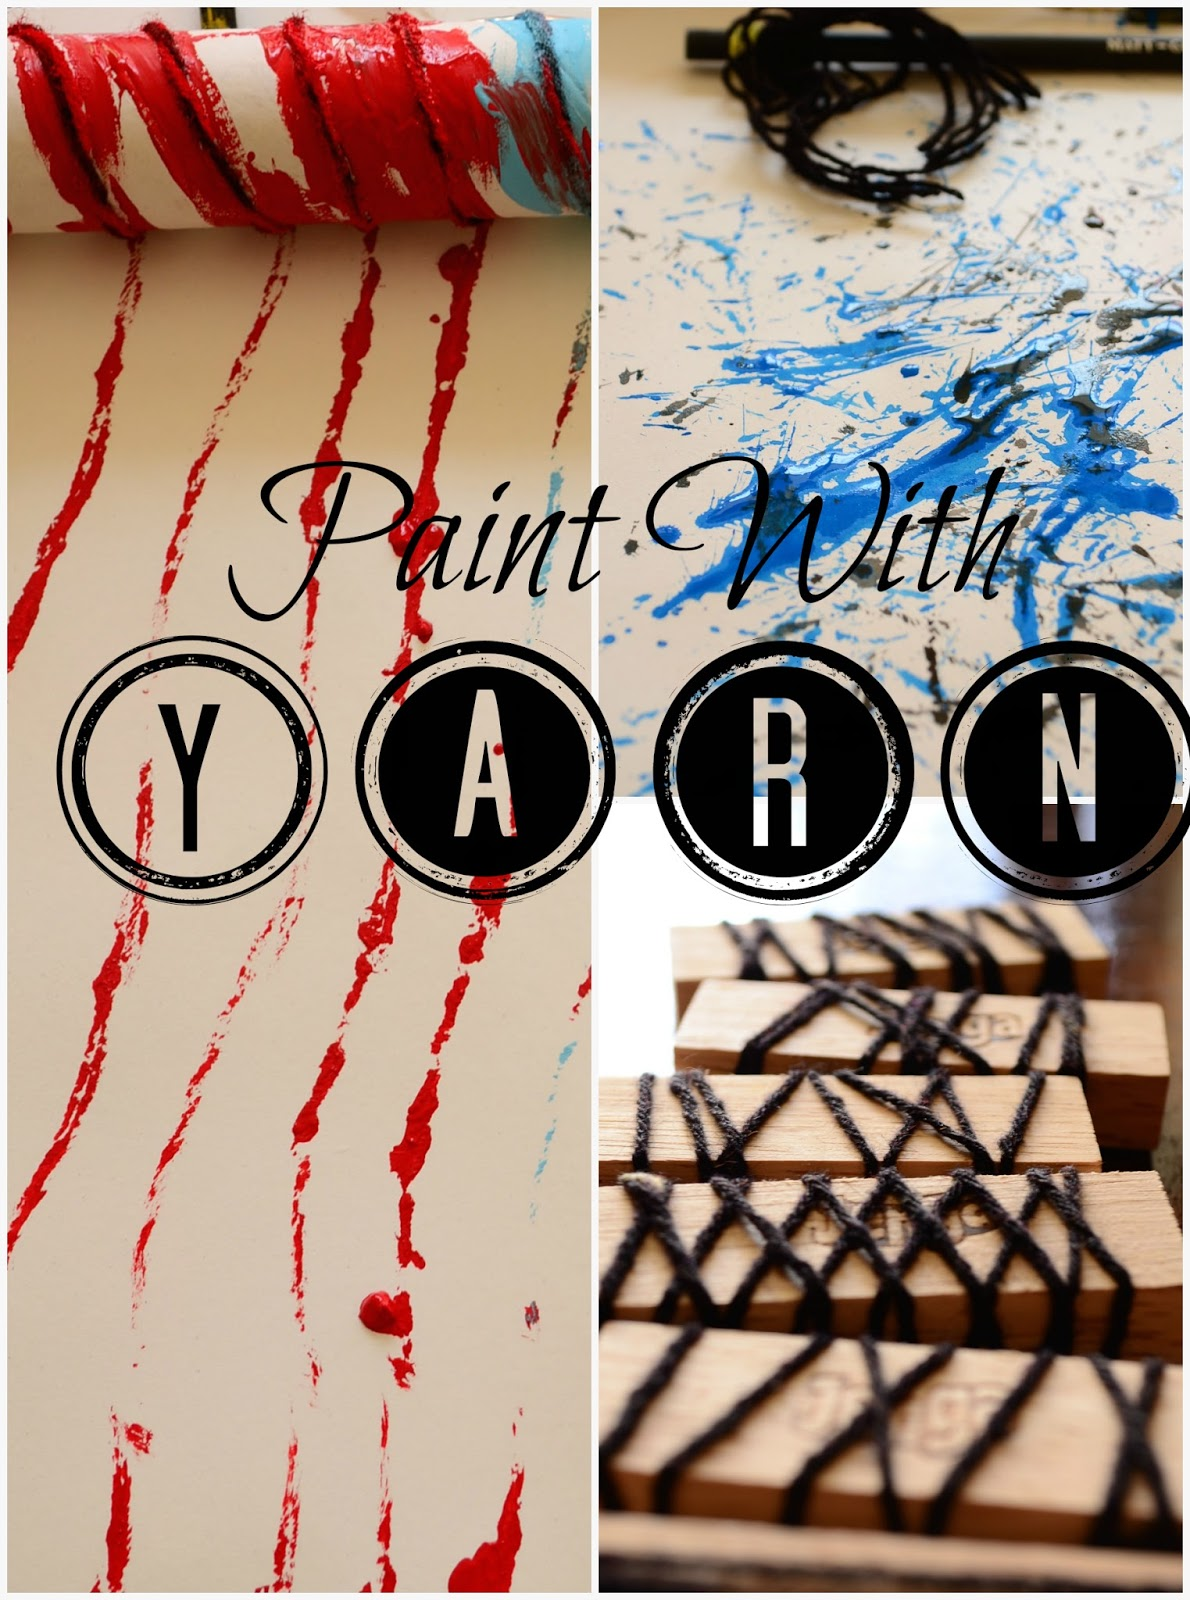 Paint with Yarn